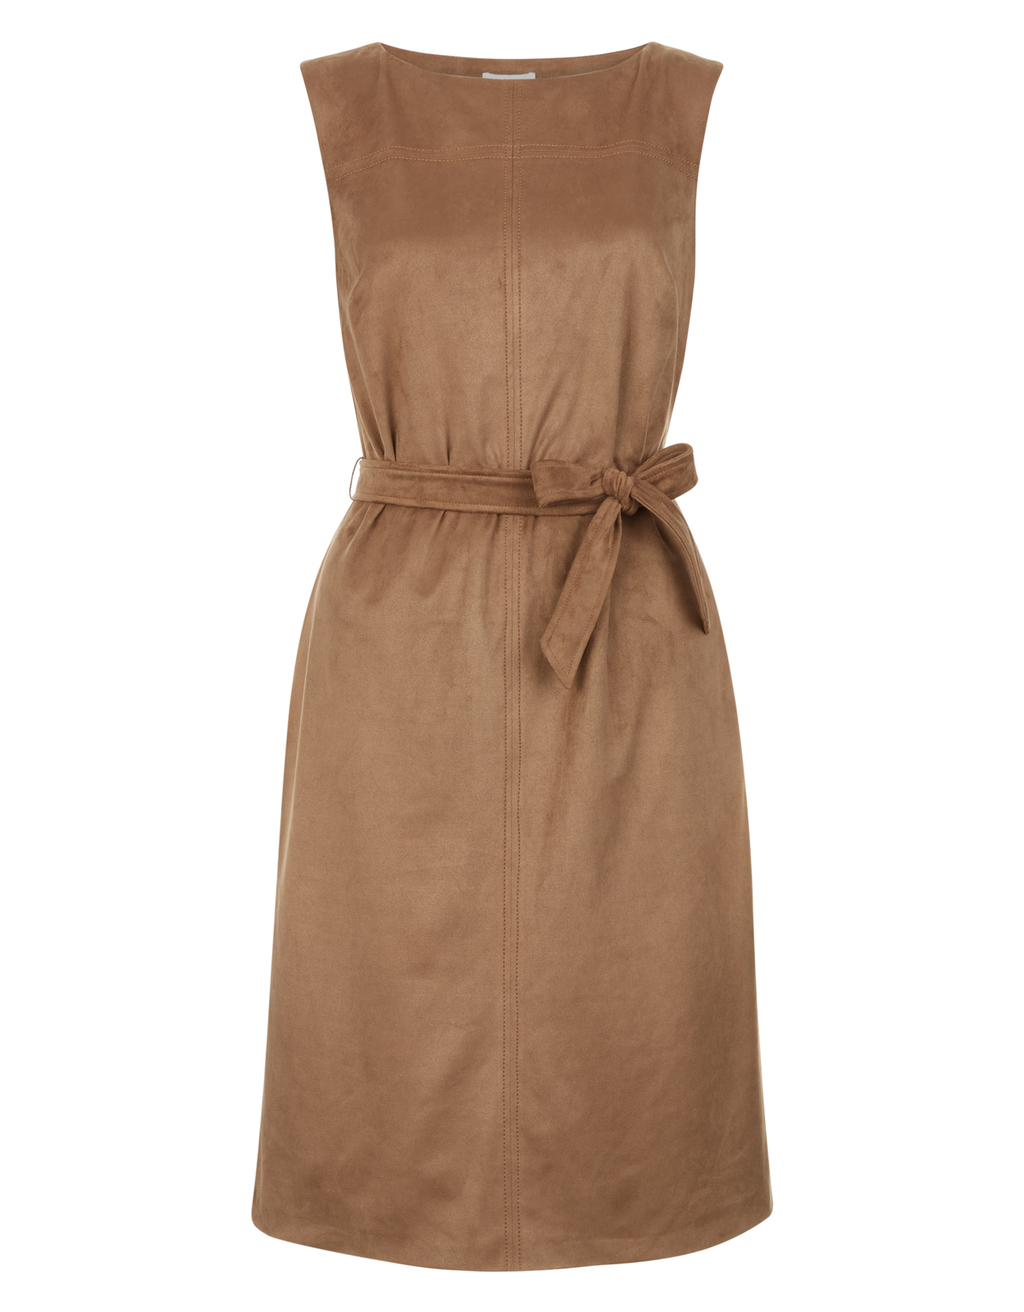 Arya Suedette Dress - style: shift; fit: tailored/fitted; pattern: plain; sleeve style: sleeveless; waist detail: belted waist/tie at waist/drawstring; predominant colour: tan; length: just above the knee; fibres: polyester/polyamide - 100%; neckline: crew; sleeve length: sleeveless; pattern type: fabric; texture group: suede; occasions: creative work; season: s/s 2016; wardrobe: highlight